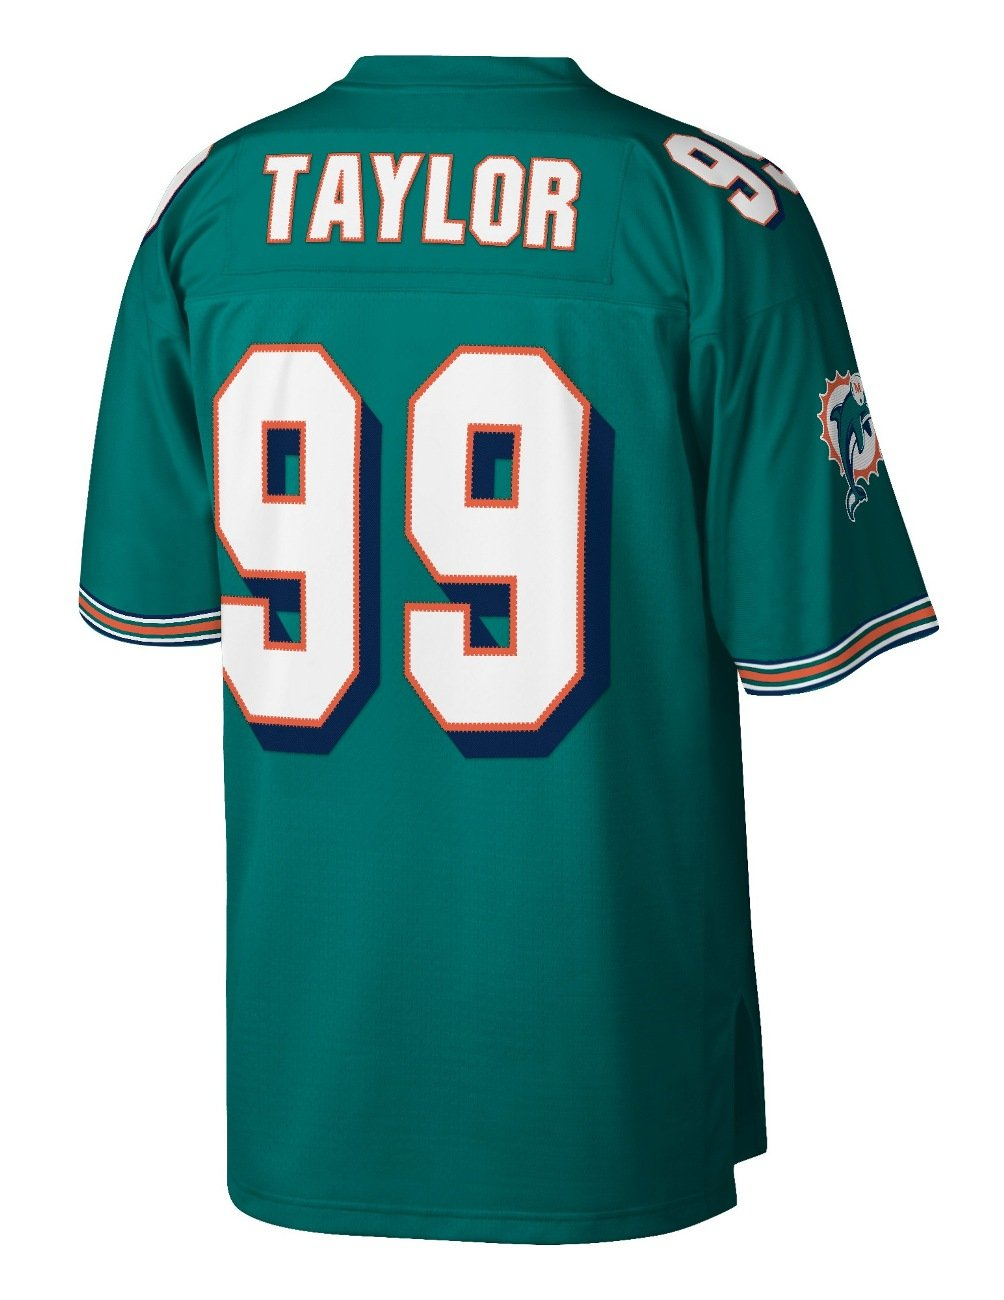 reputable site 87ade b0ffe Mitchell & Ness Jason Taylor Miami Dolphins NFL Throwback Premier Jersey